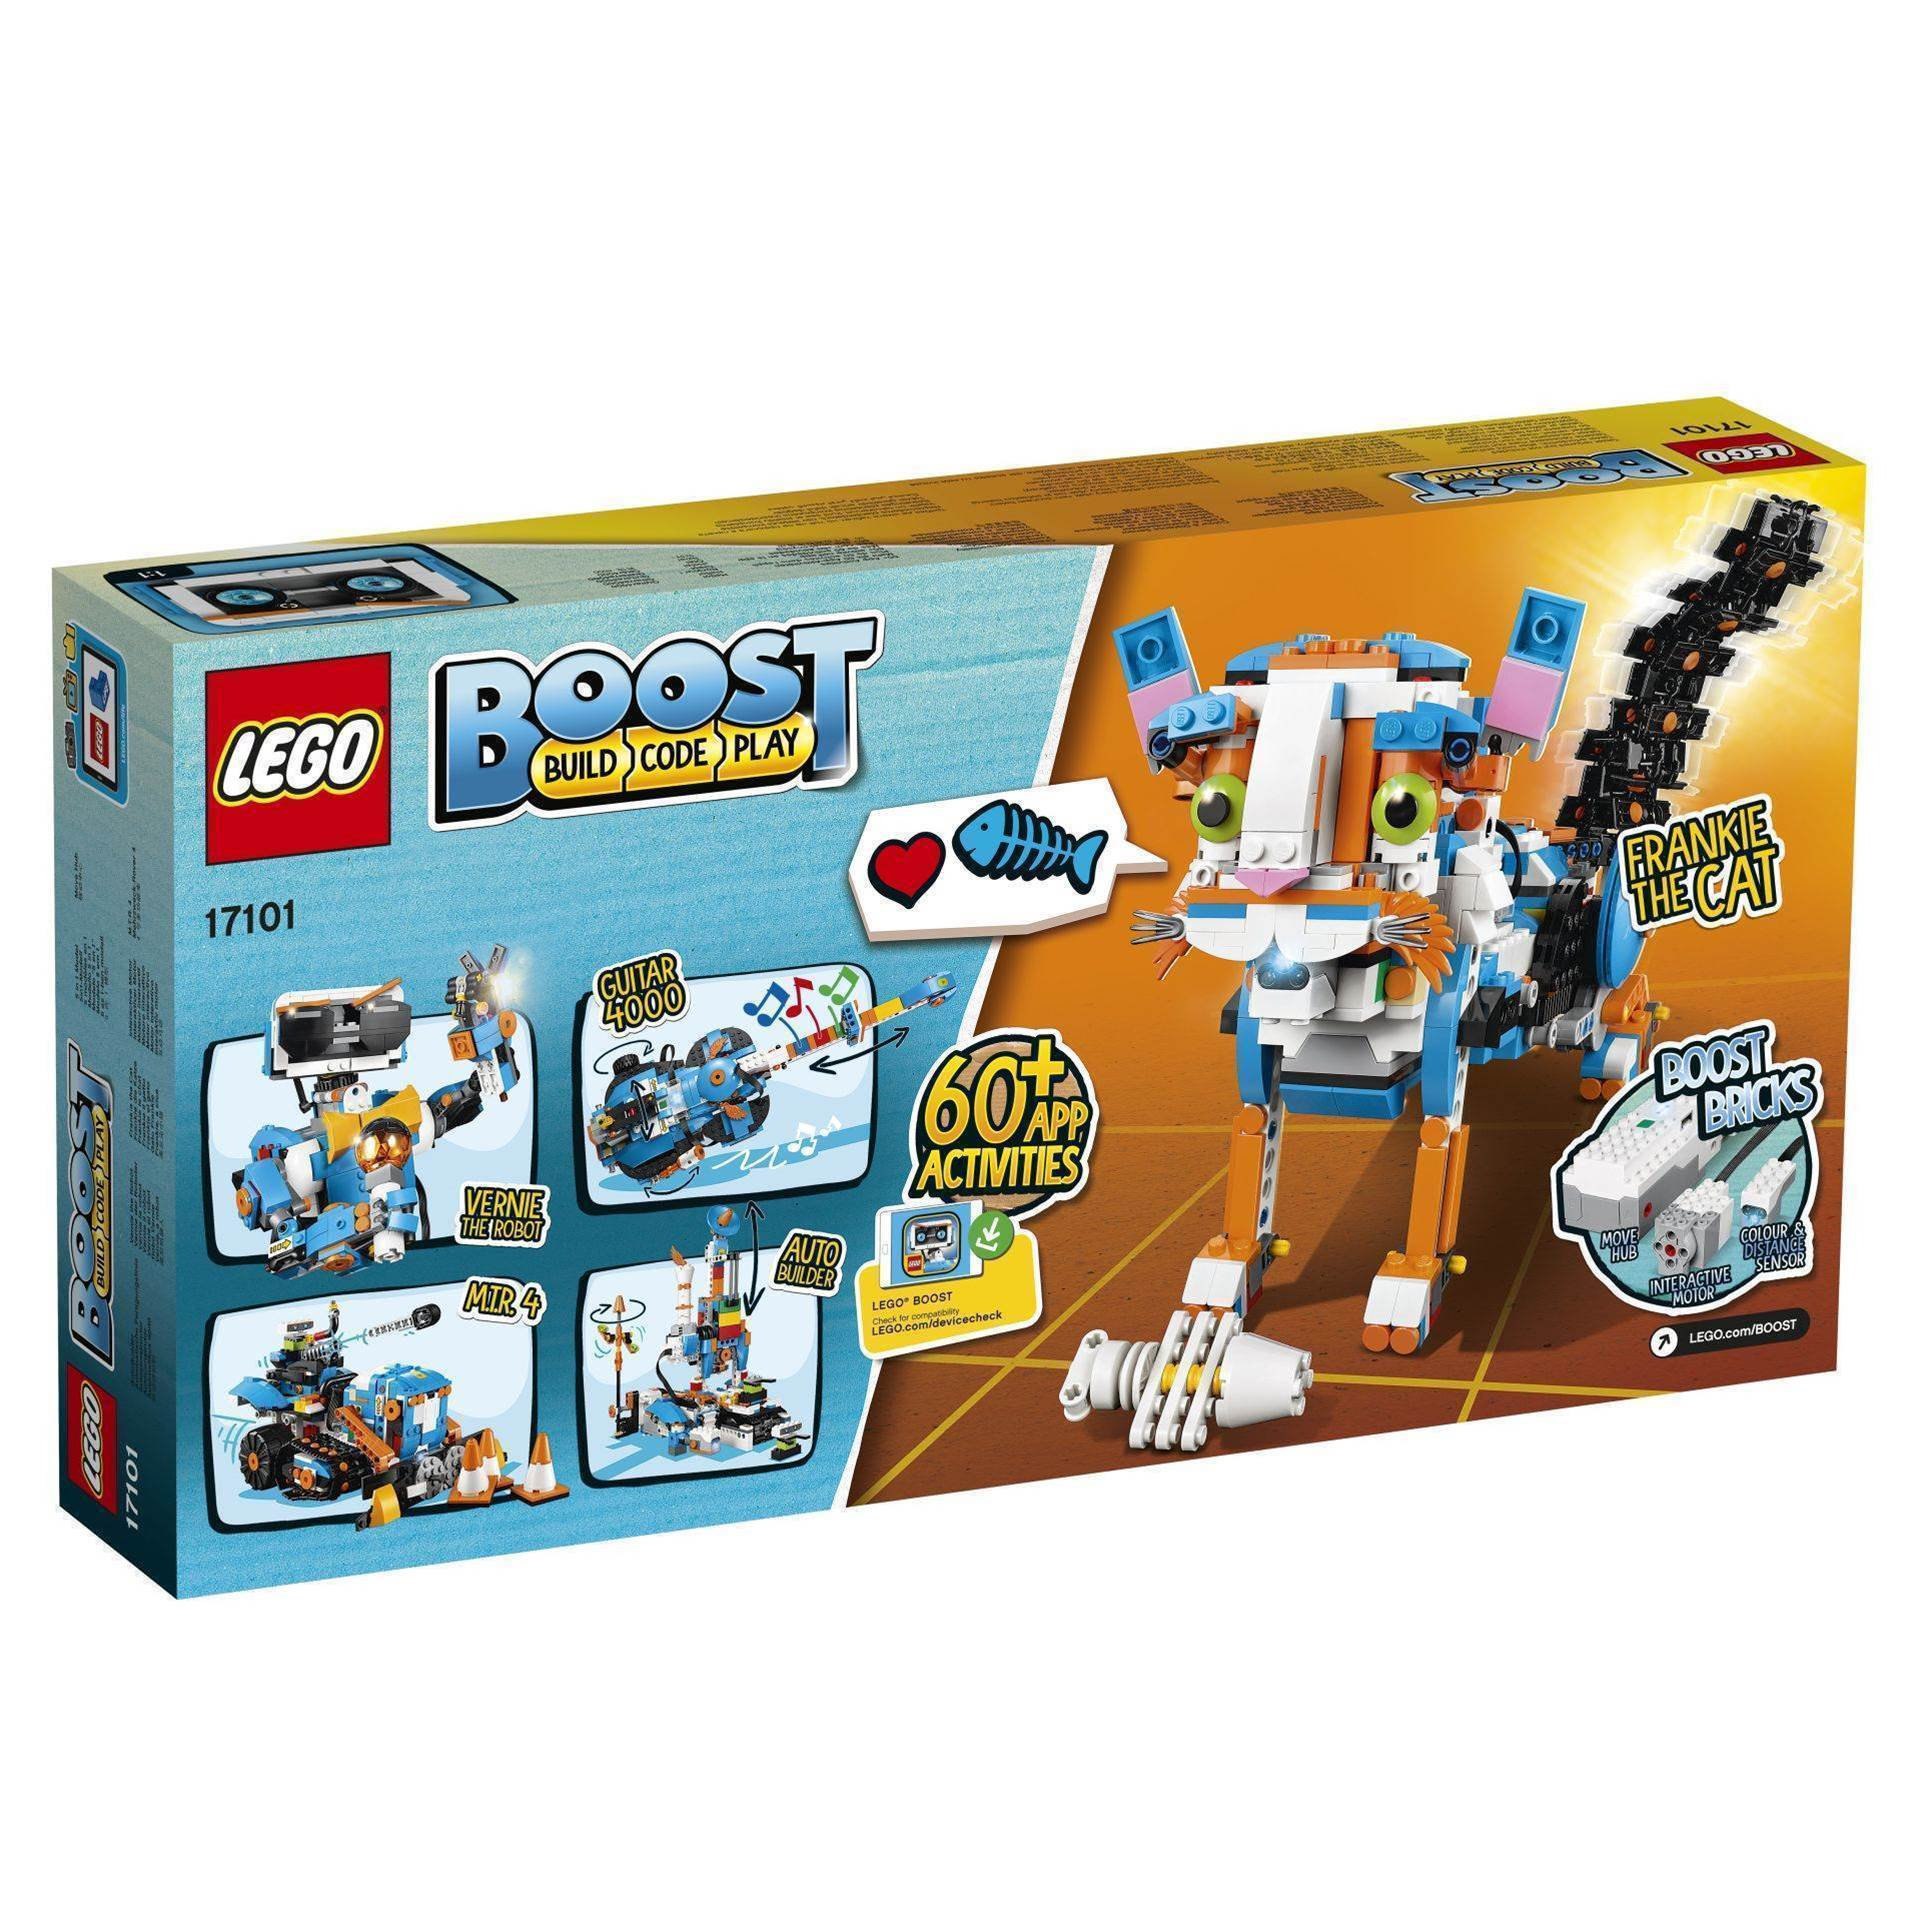 Lego Boost coding set launches in Australia